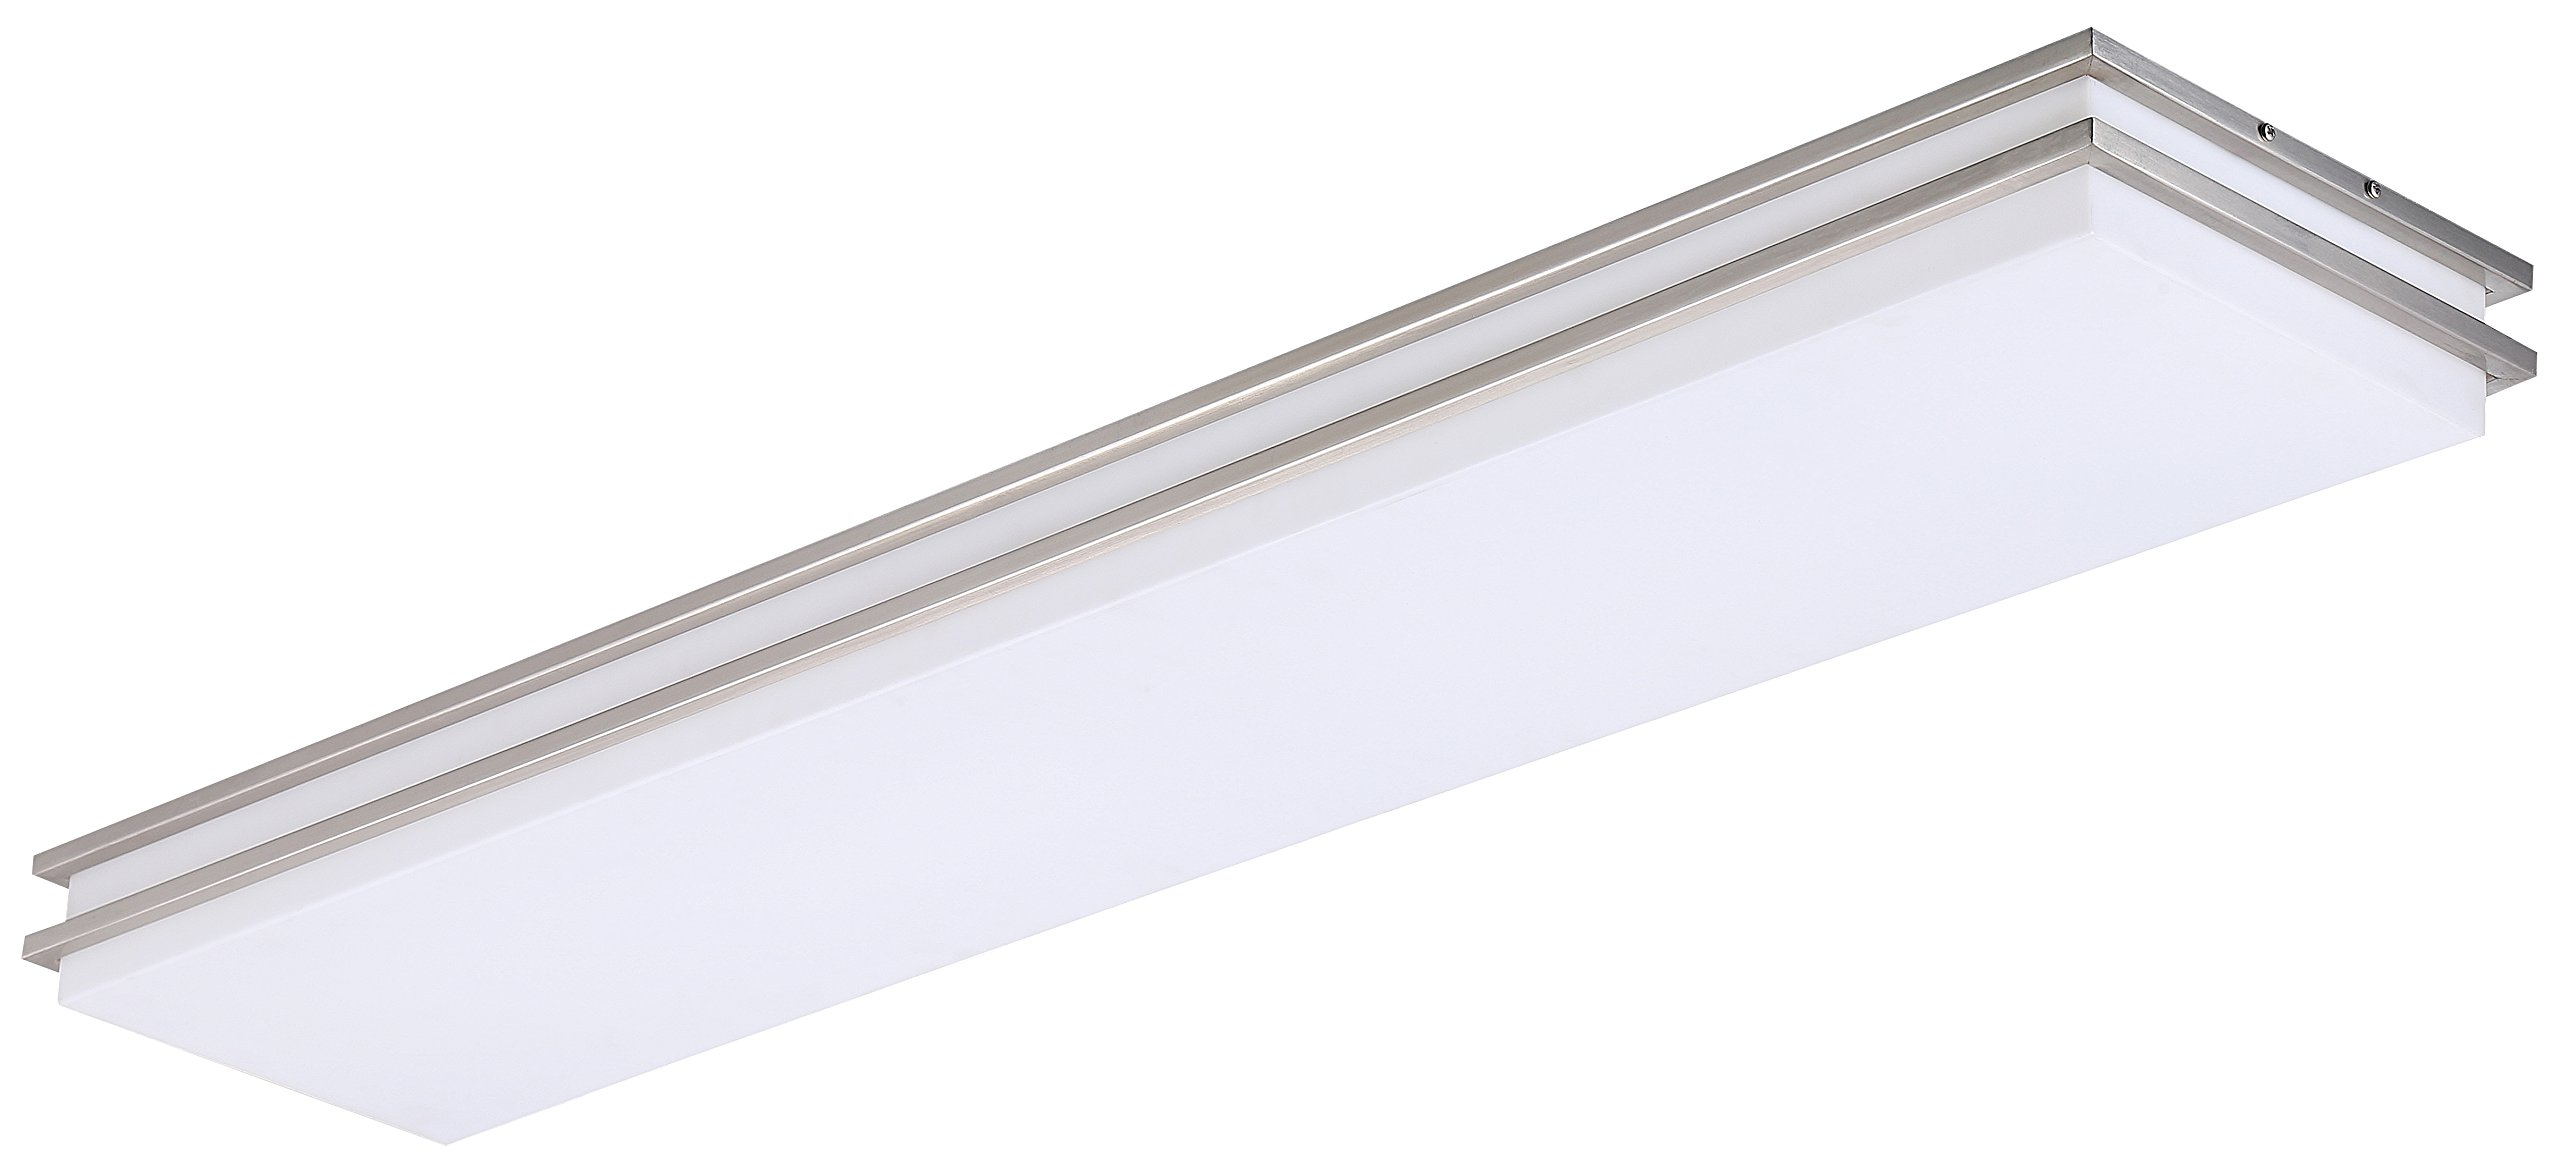 LB72137 LED Linear Flush Mount Ceiling Lighting, Antique Brushed Nickel, 48-Inch, 35W, 200W Equivalent, 4000K Cool White, 2800 Lumens, ETL & DLC Listed, ENERGY STAR, Dimmable by Light Blue USA